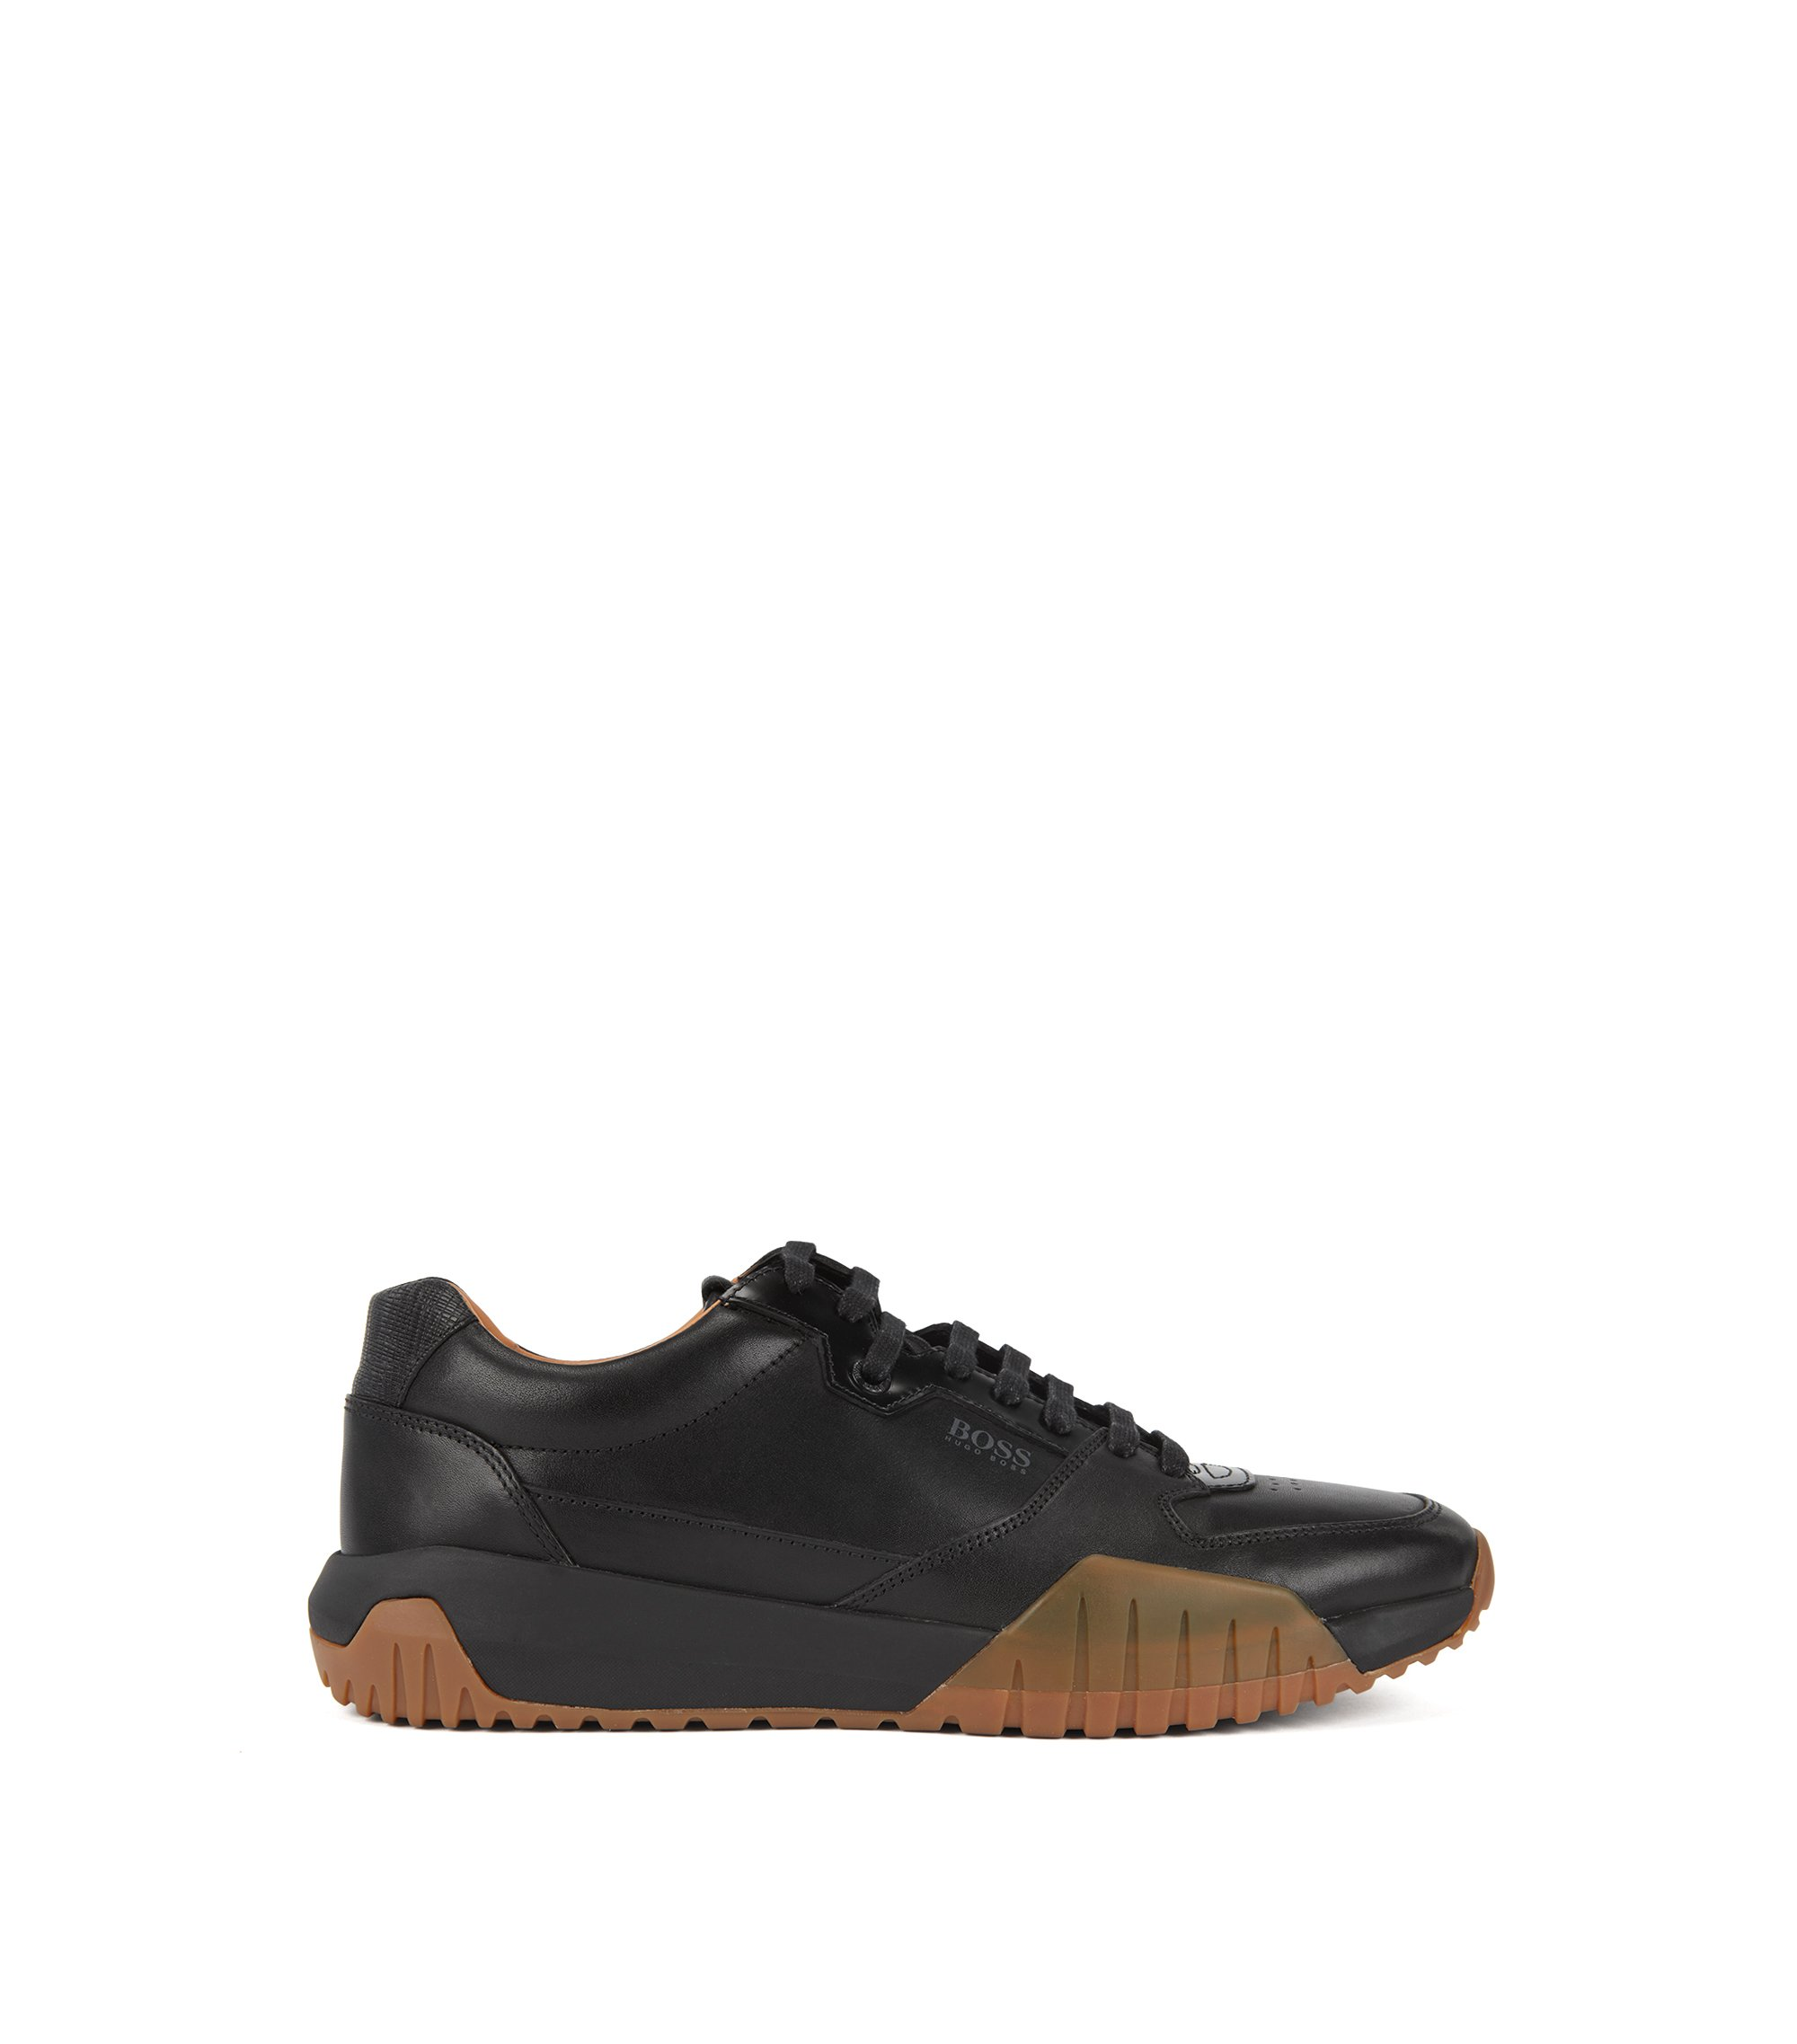 Running-inspired trainers with calf-leather uppers, Black